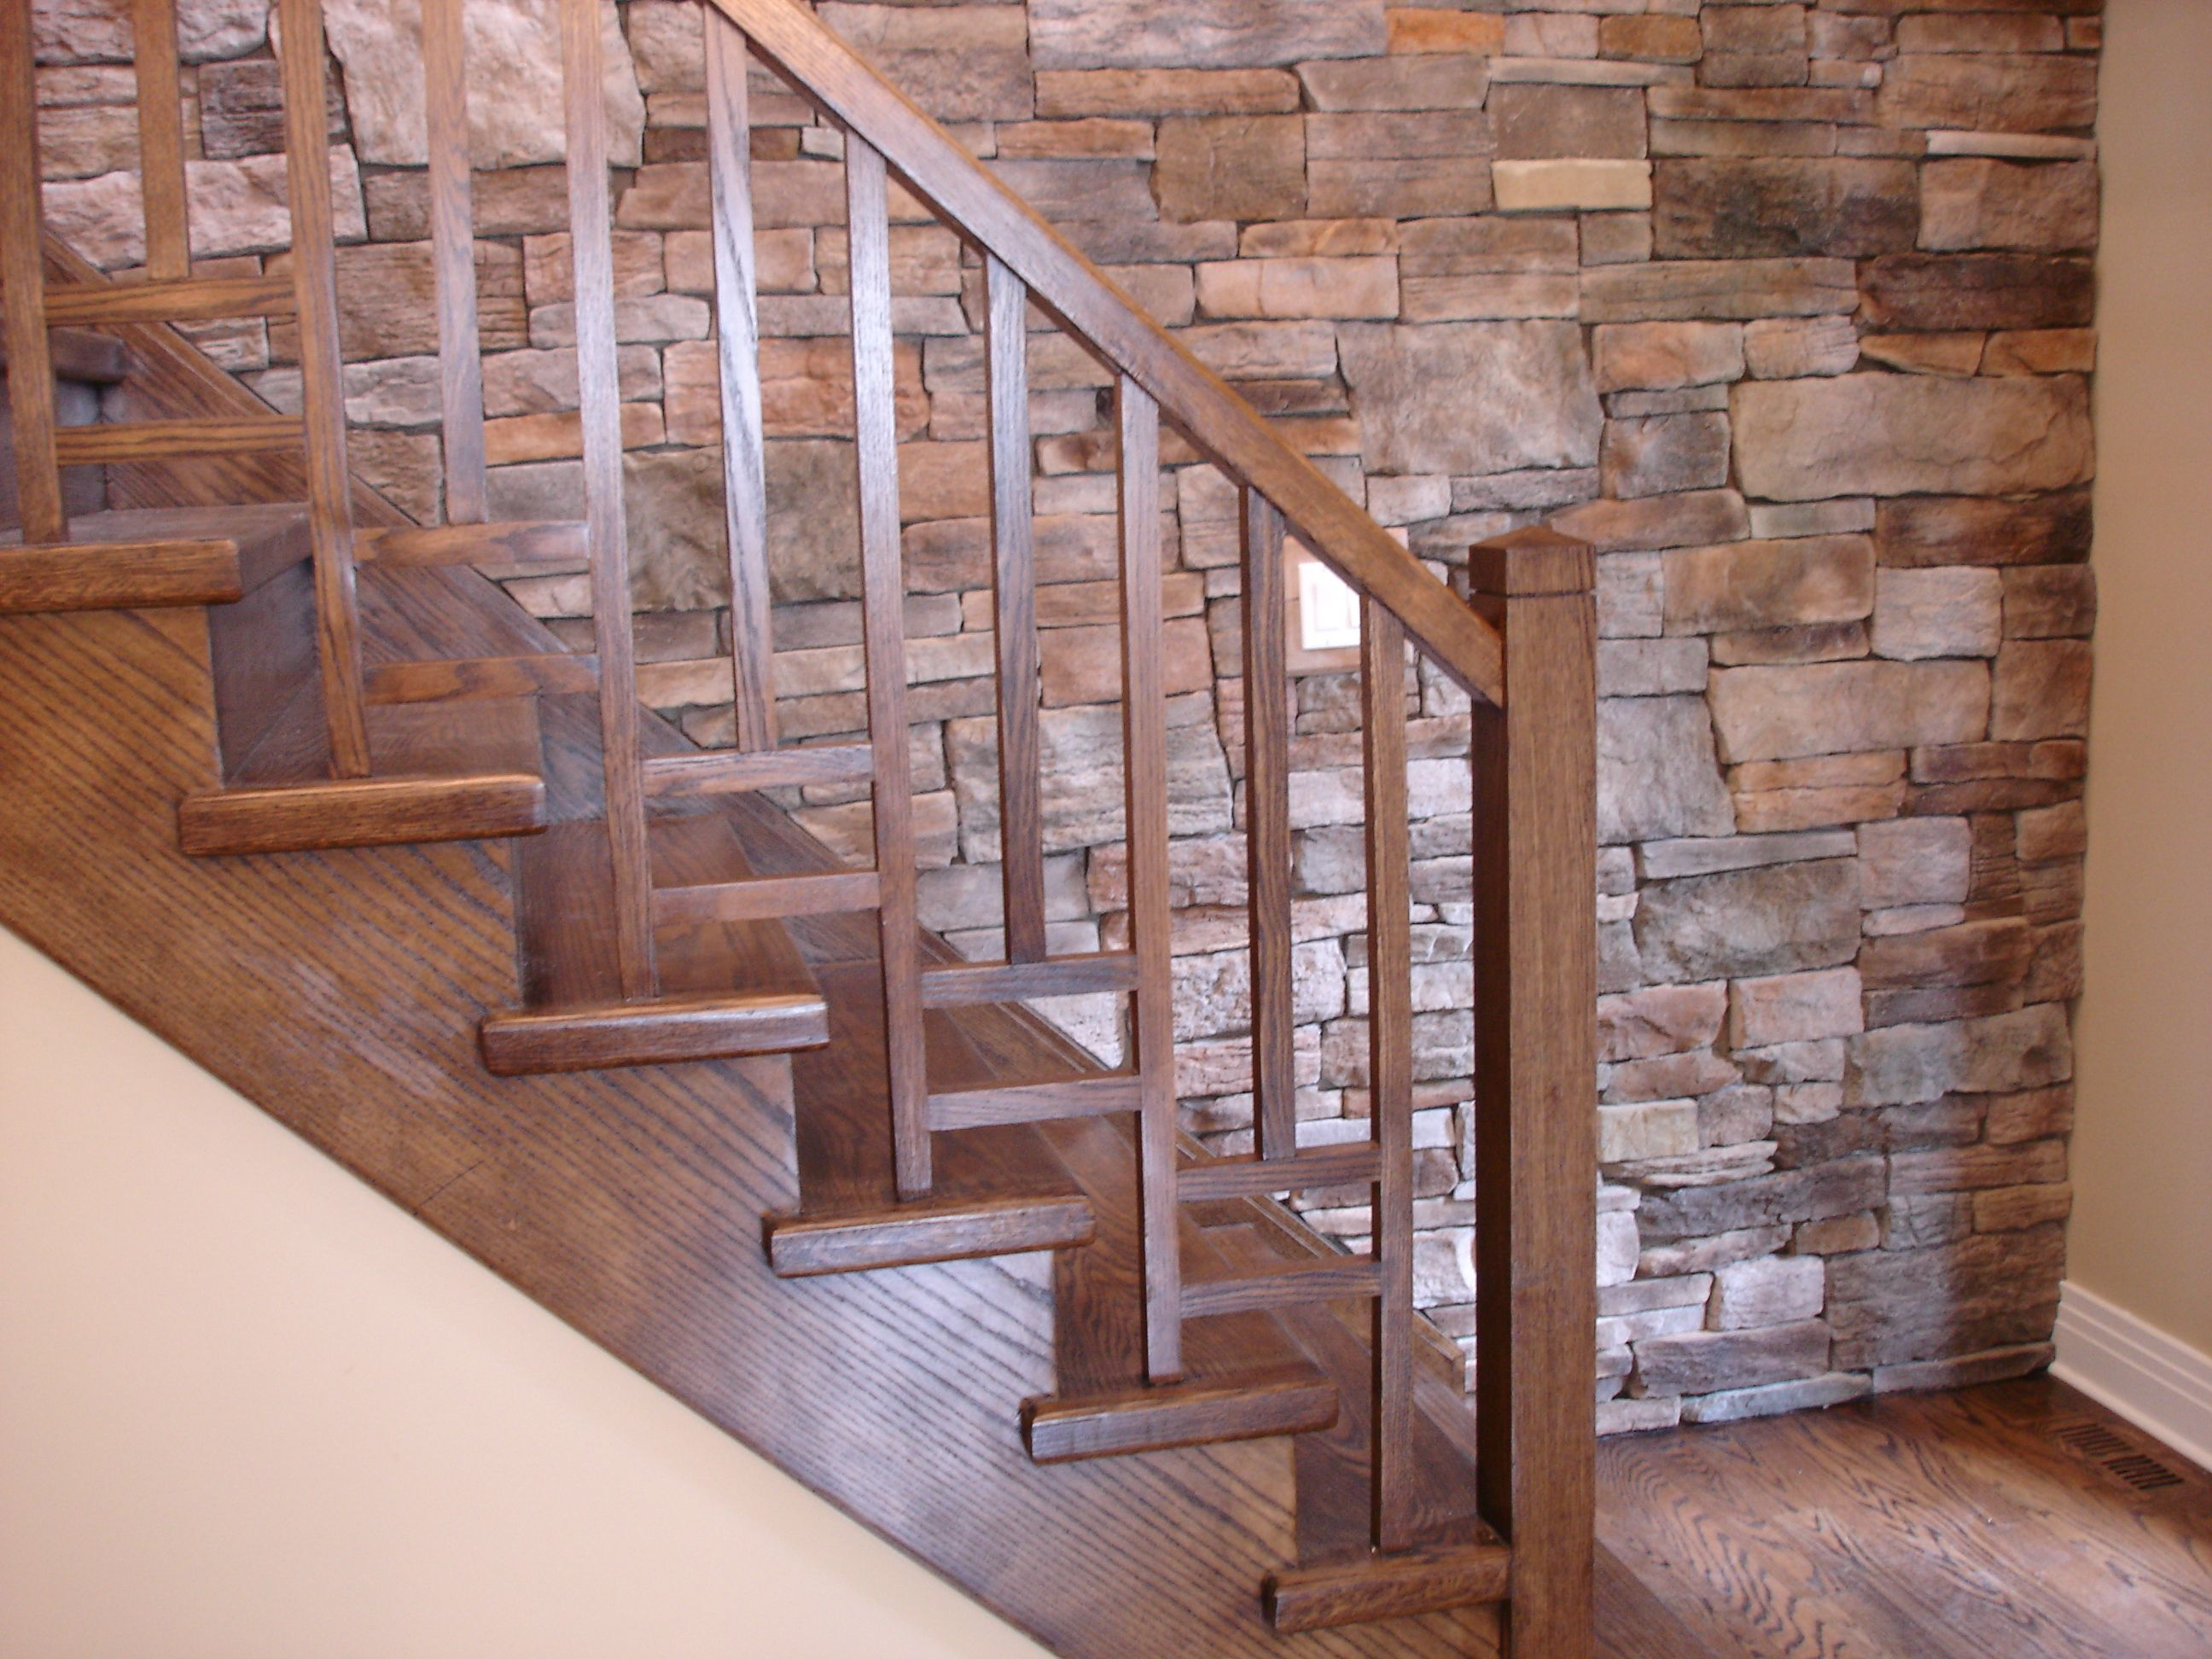 Stair Railing Types Stair Banisters And Railings Ideas | Stair Railing Designs Interior | Exterior | Creative | Antique | Scandinavian | Rod Iron